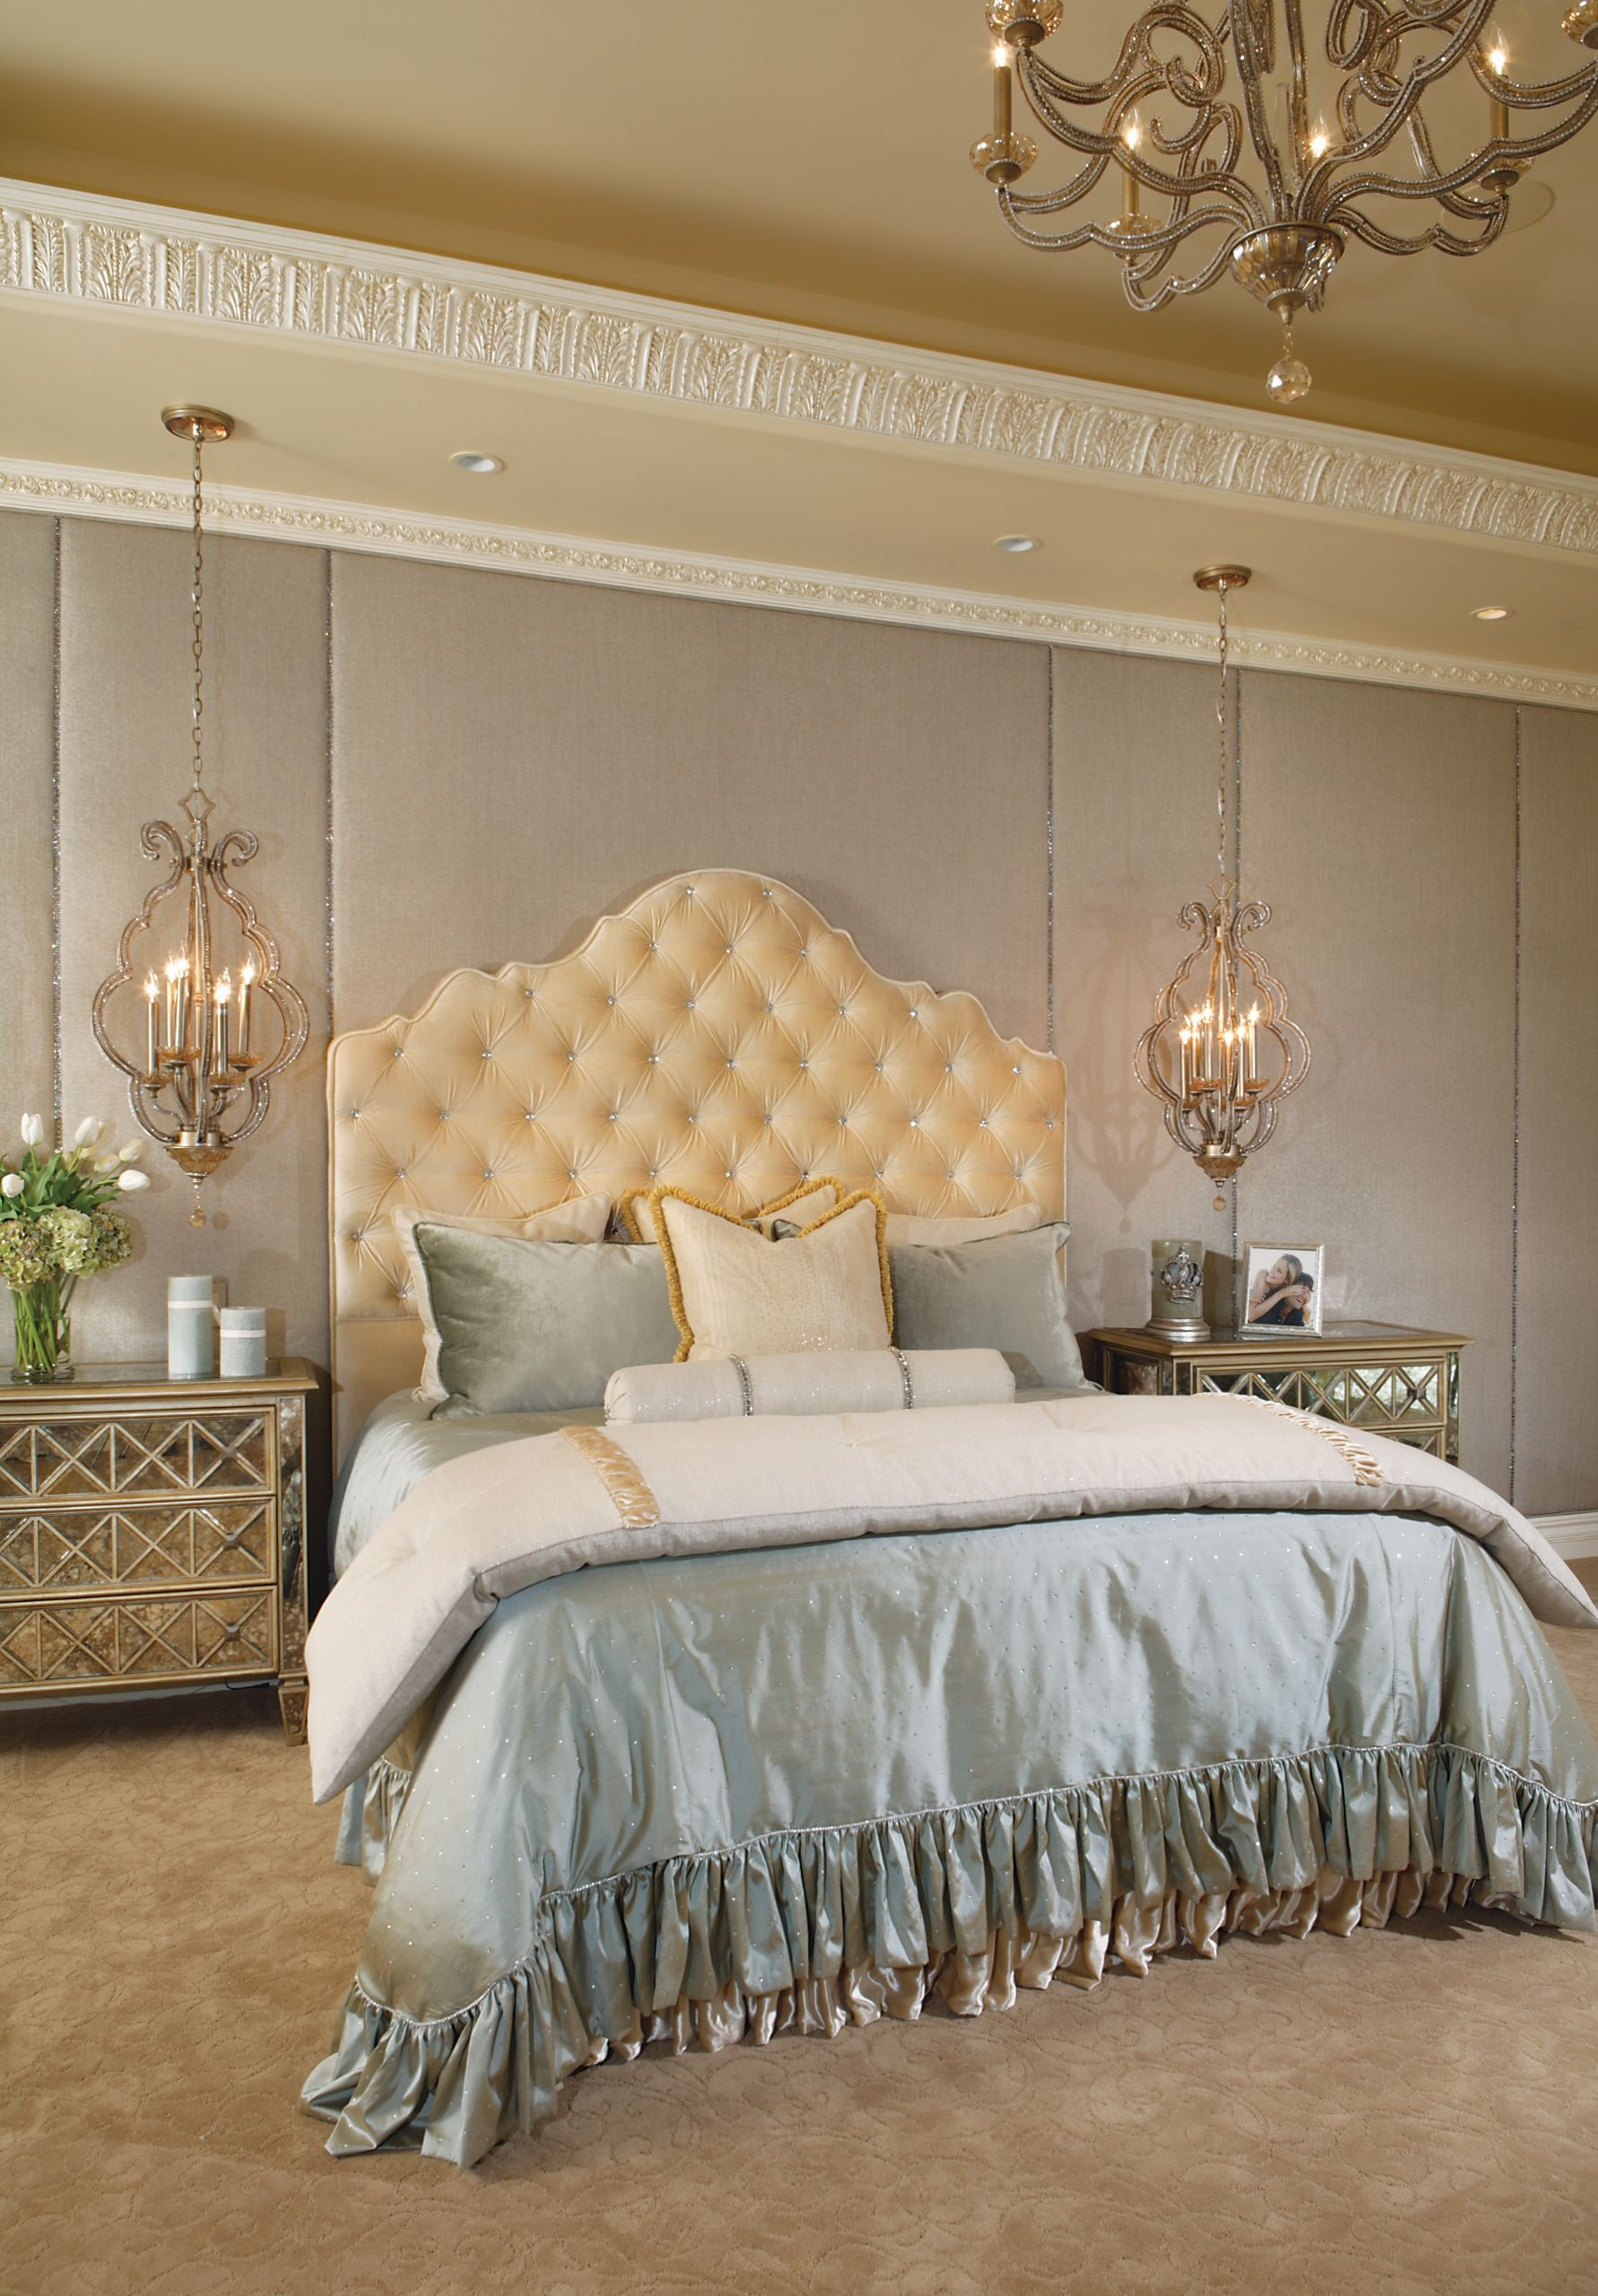 bedroom design by eagle luxury bedrooms luxurious on unique contemporary bedroom design ideas for more inspiration id=21504